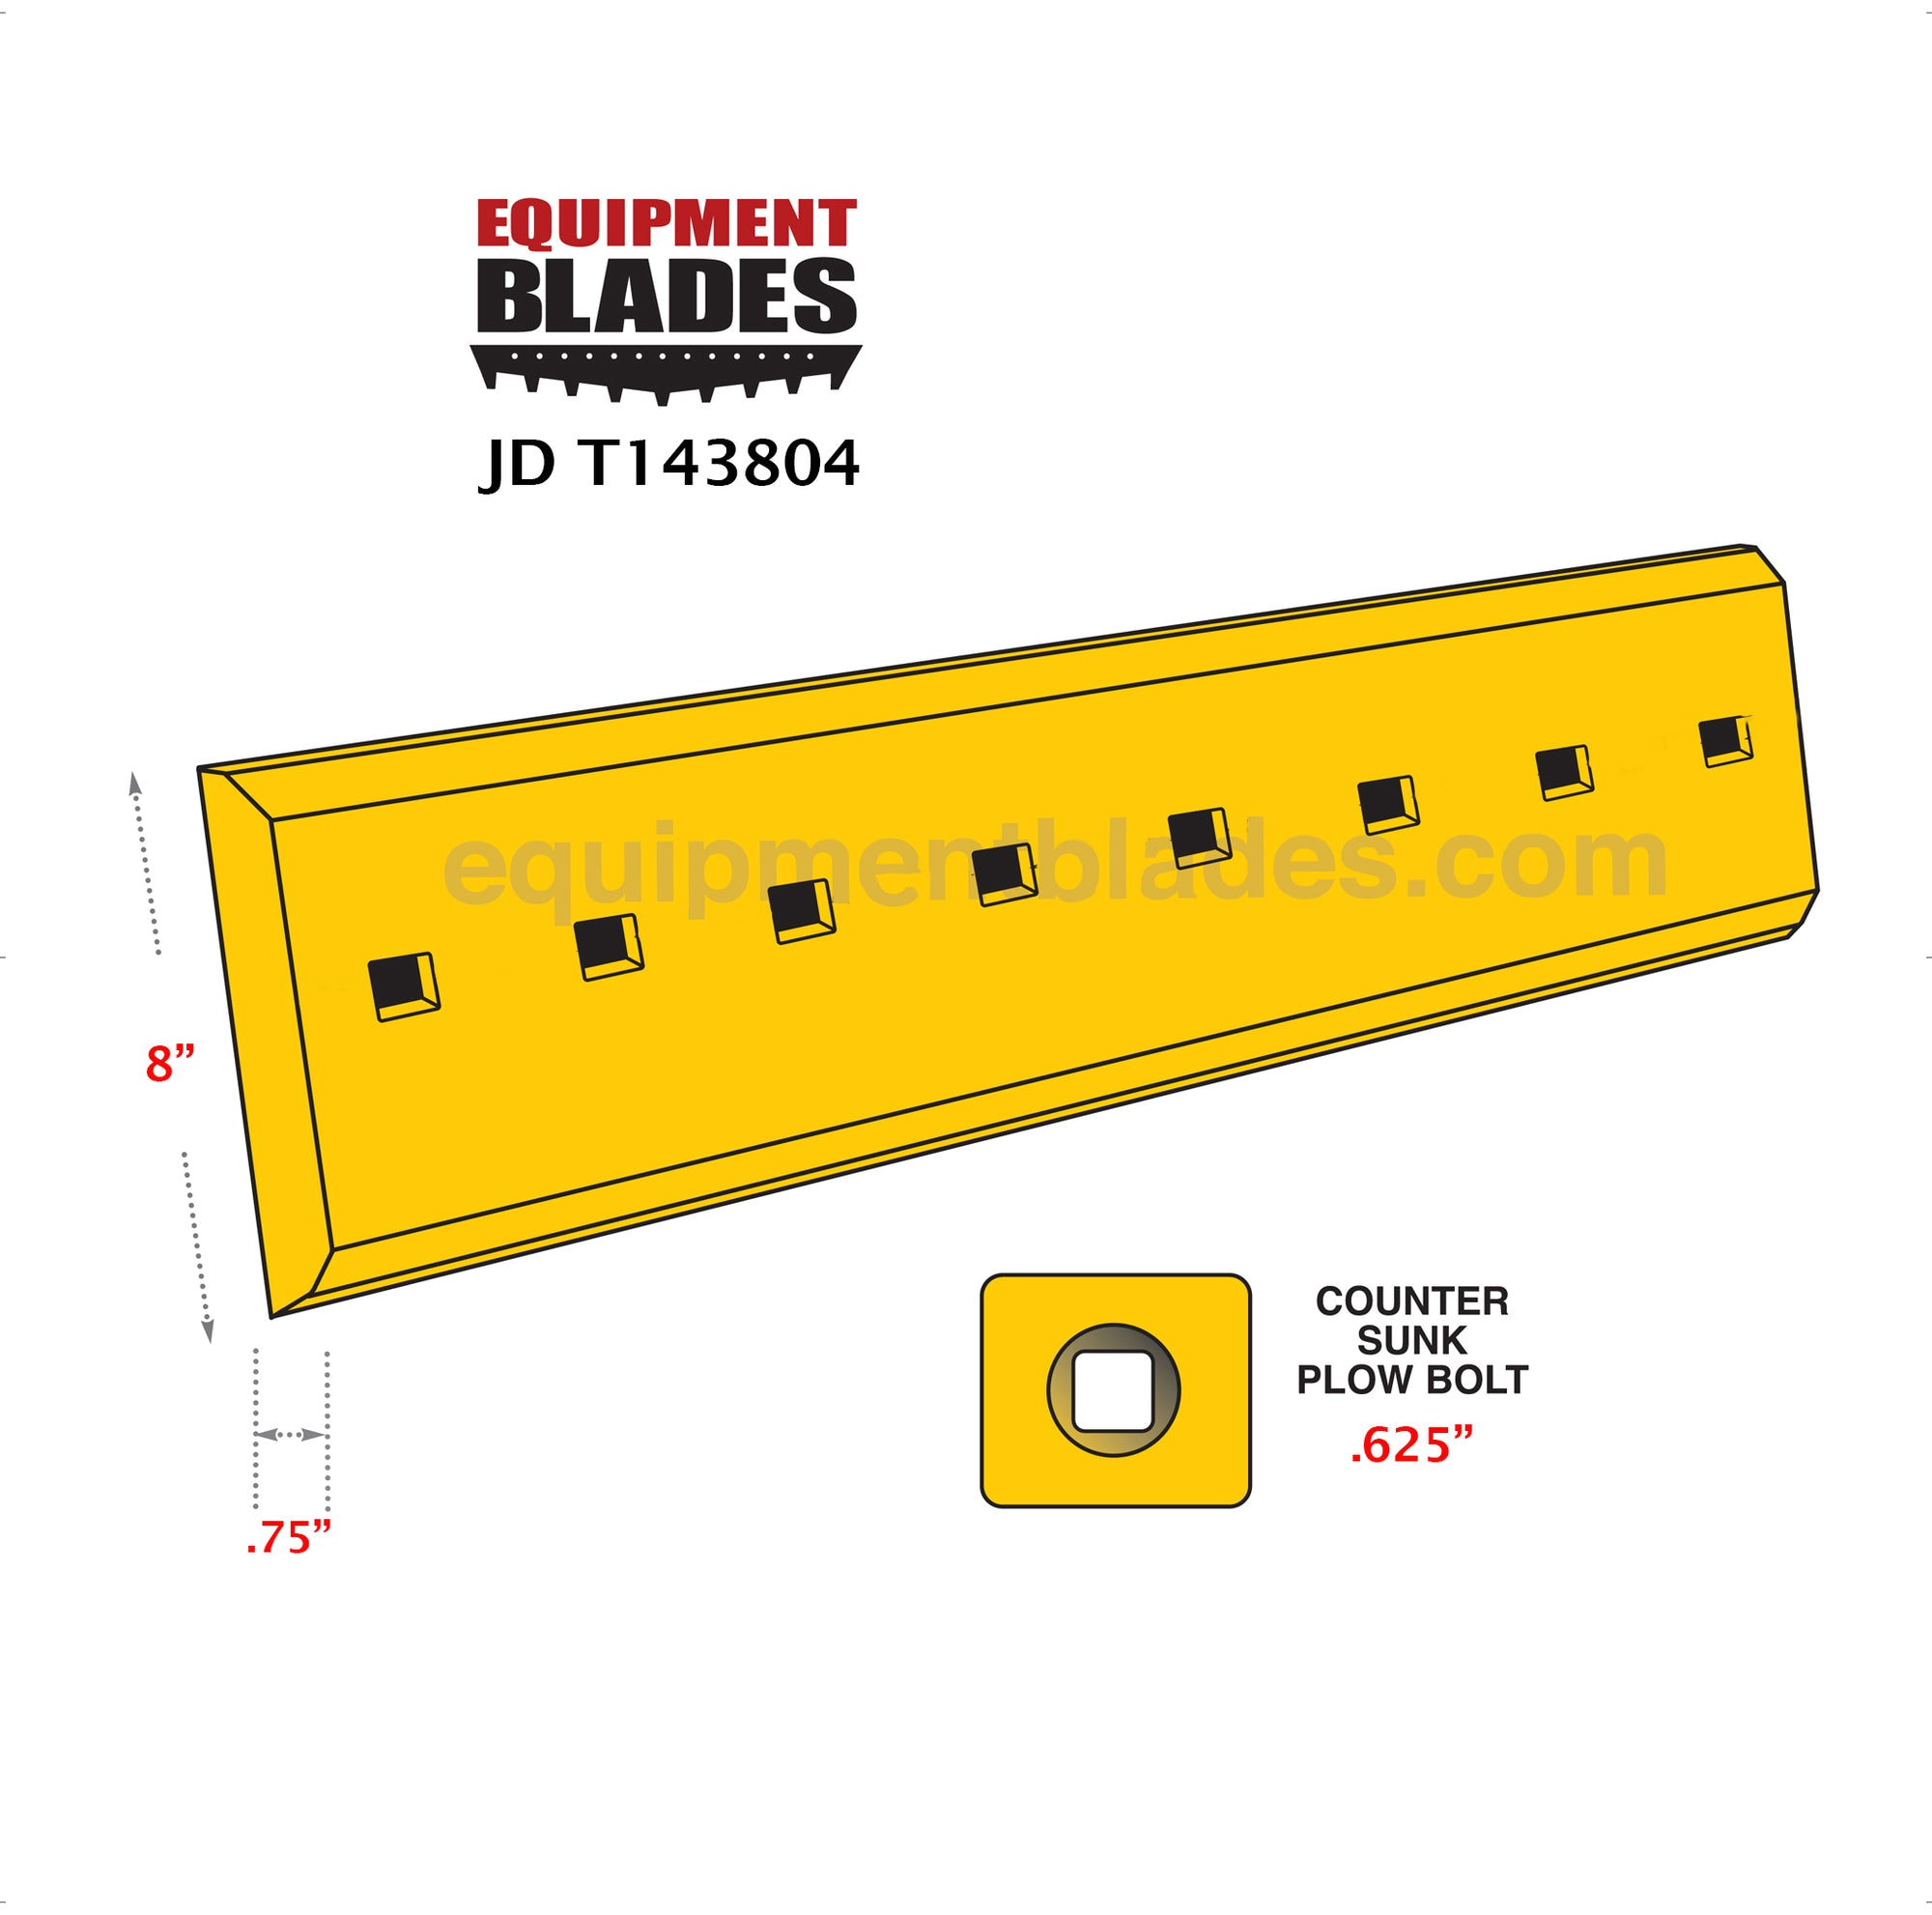 JD T143804-Equipment Blades-Equipment Blades Inc